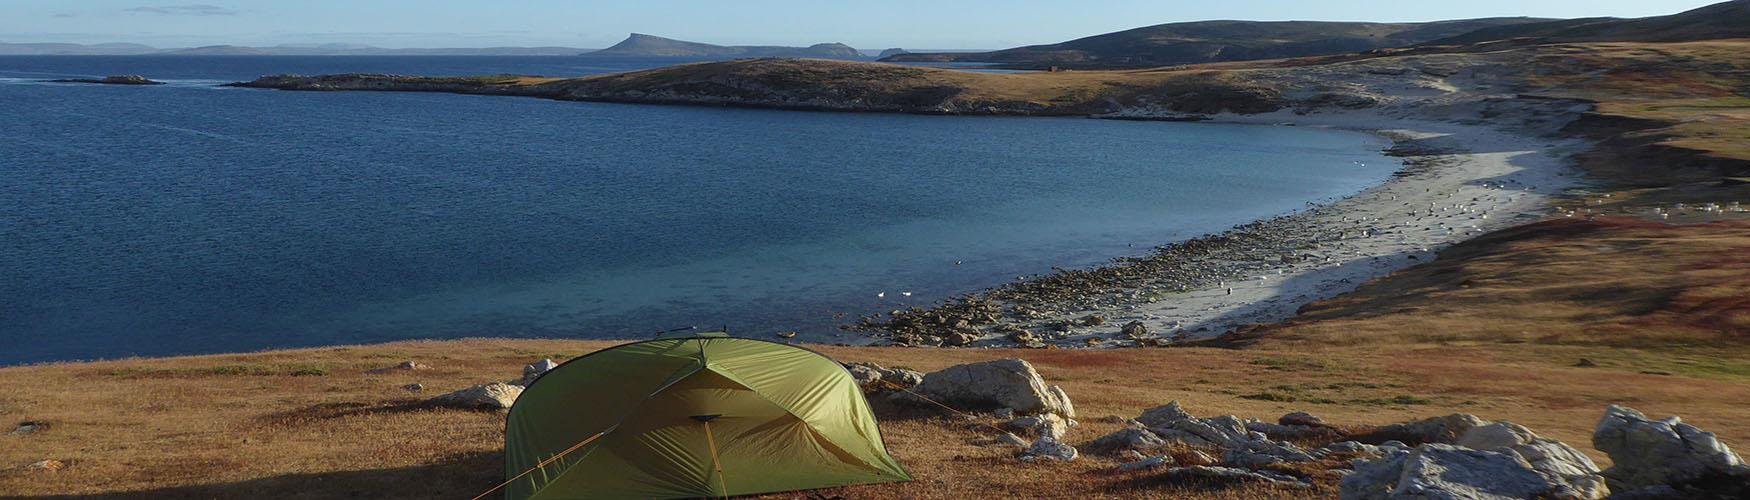 Camping in the Falkland Islands on a remote beach